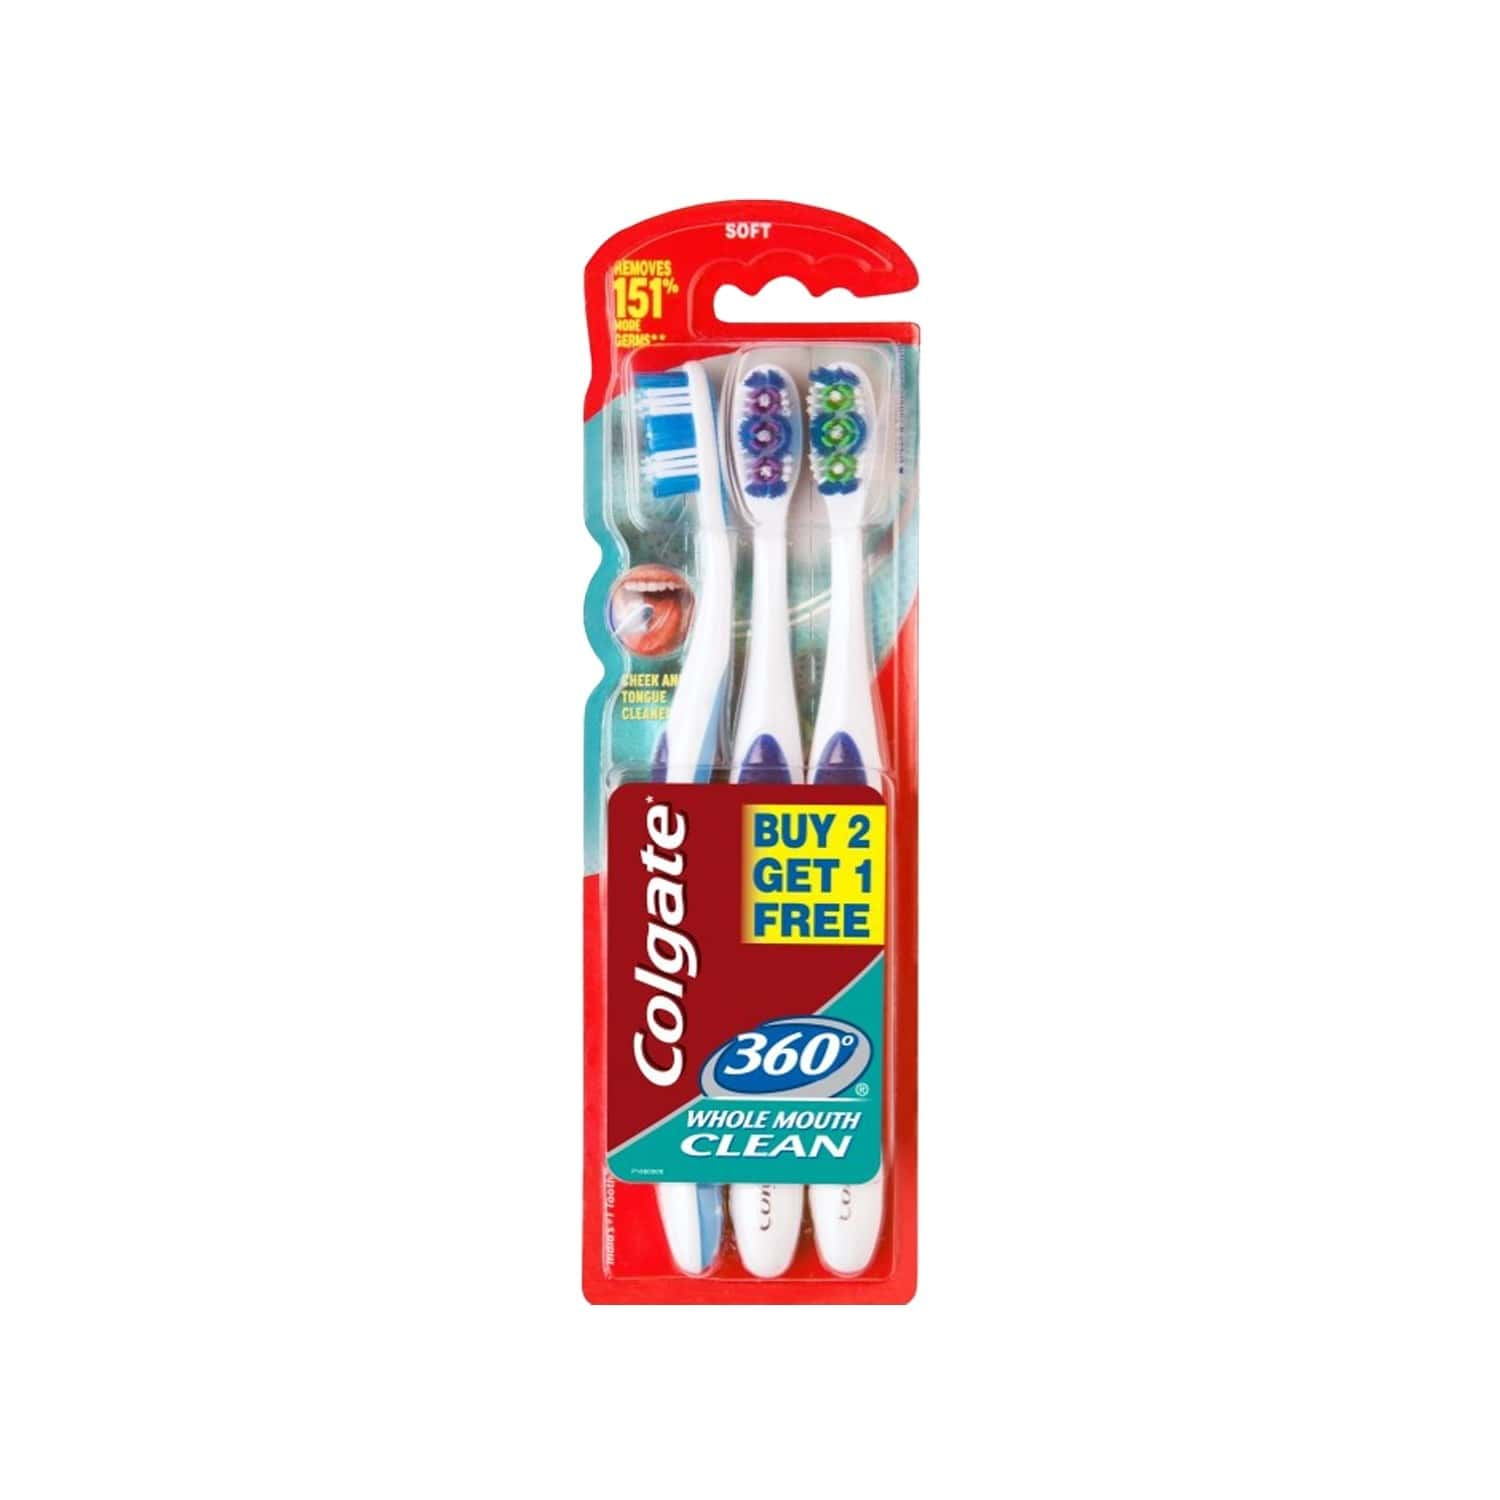 Colgate Toothbrush - 360 Whole Mouth Clean - Saver Pack, Buy 2 Get 1 Free